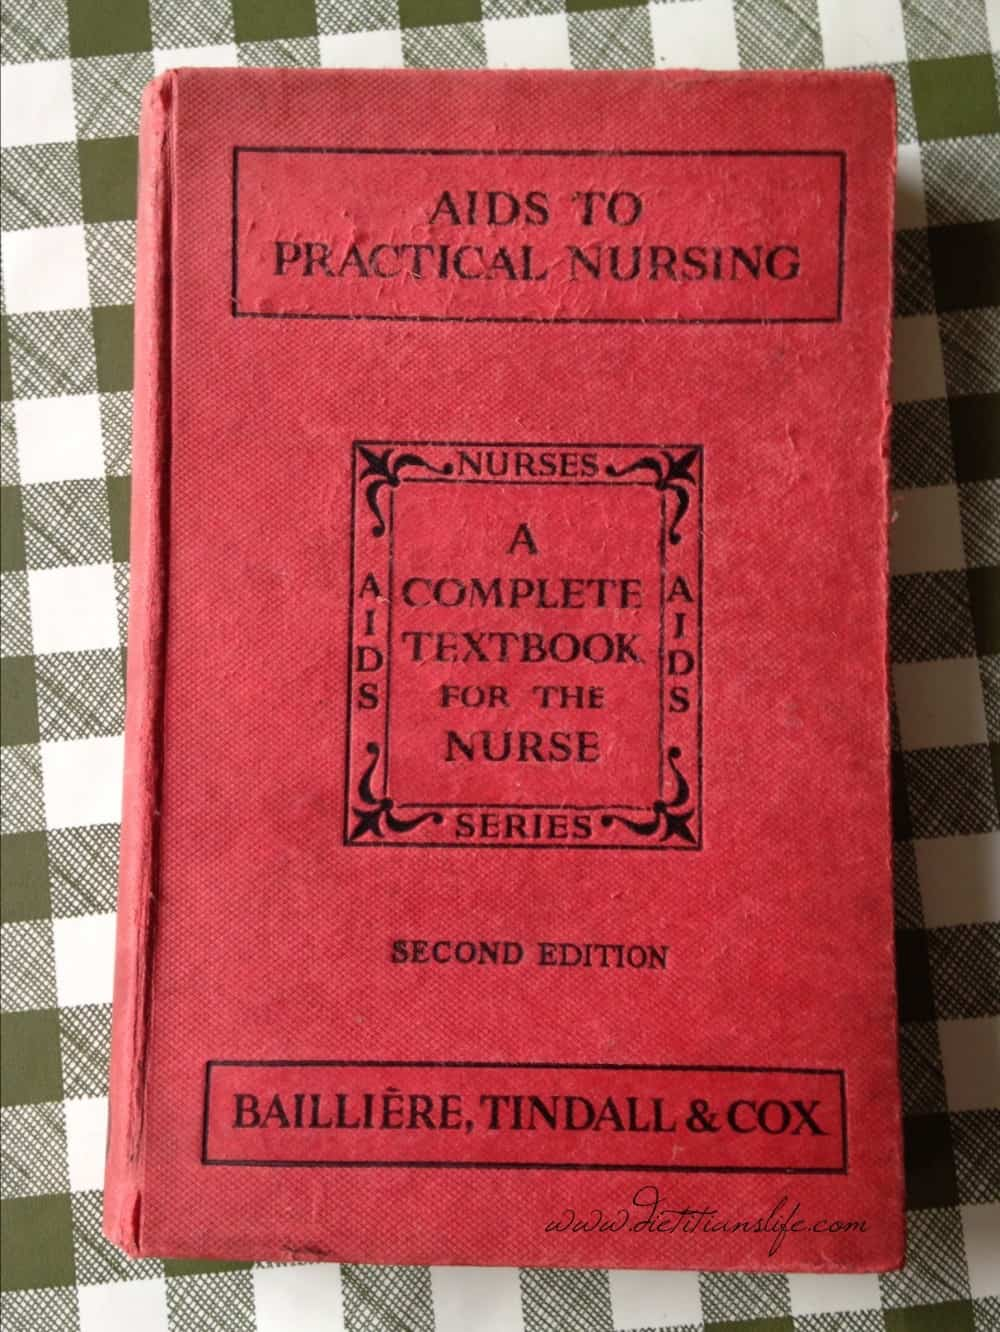 Aid to practical nursing